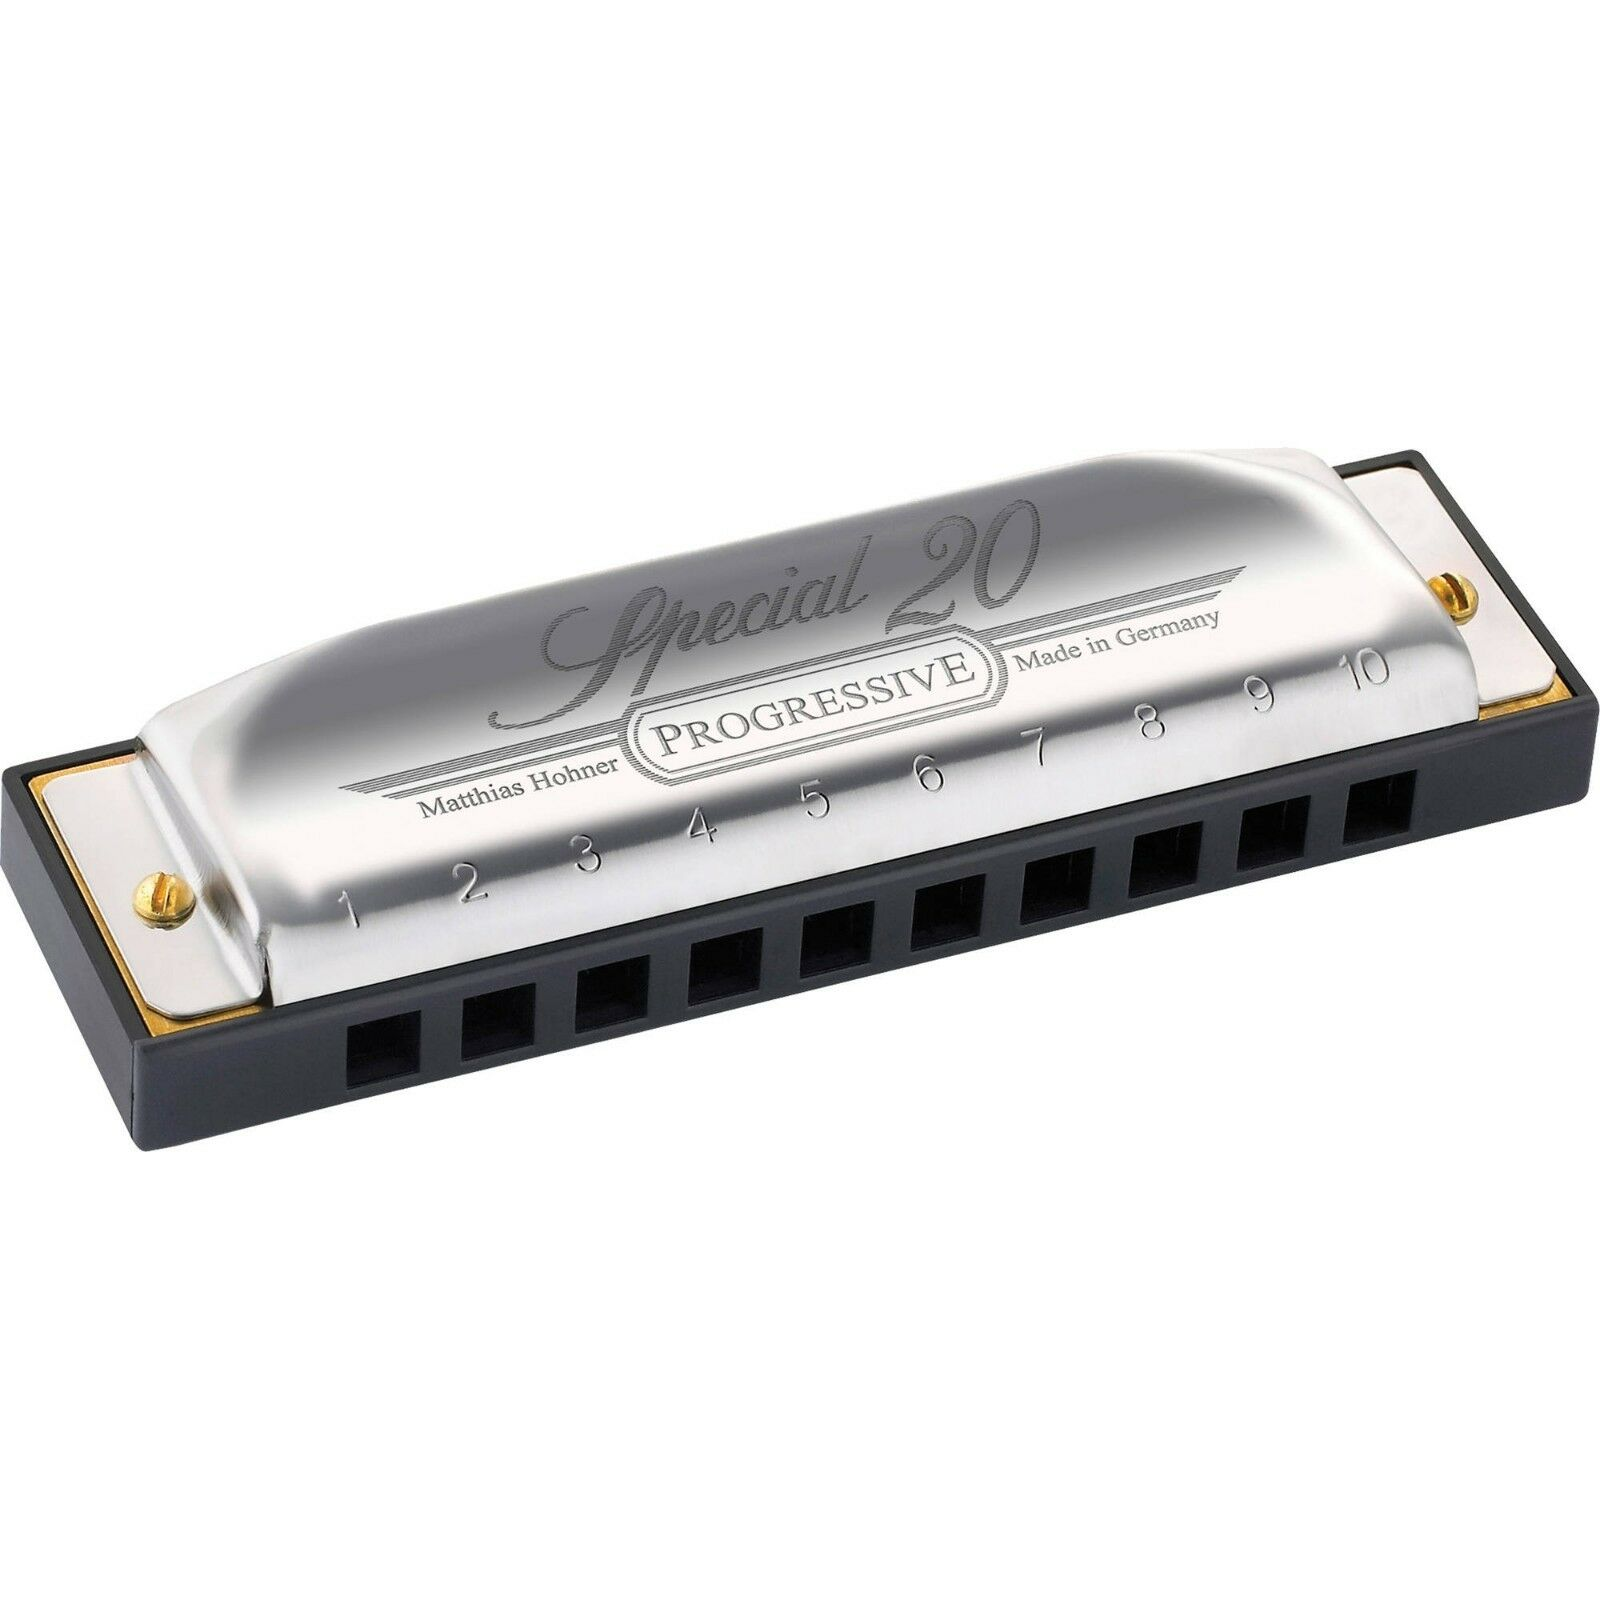 Hohner Special 20 Harmonica in C New Progressive Version  +Free Online Lessons